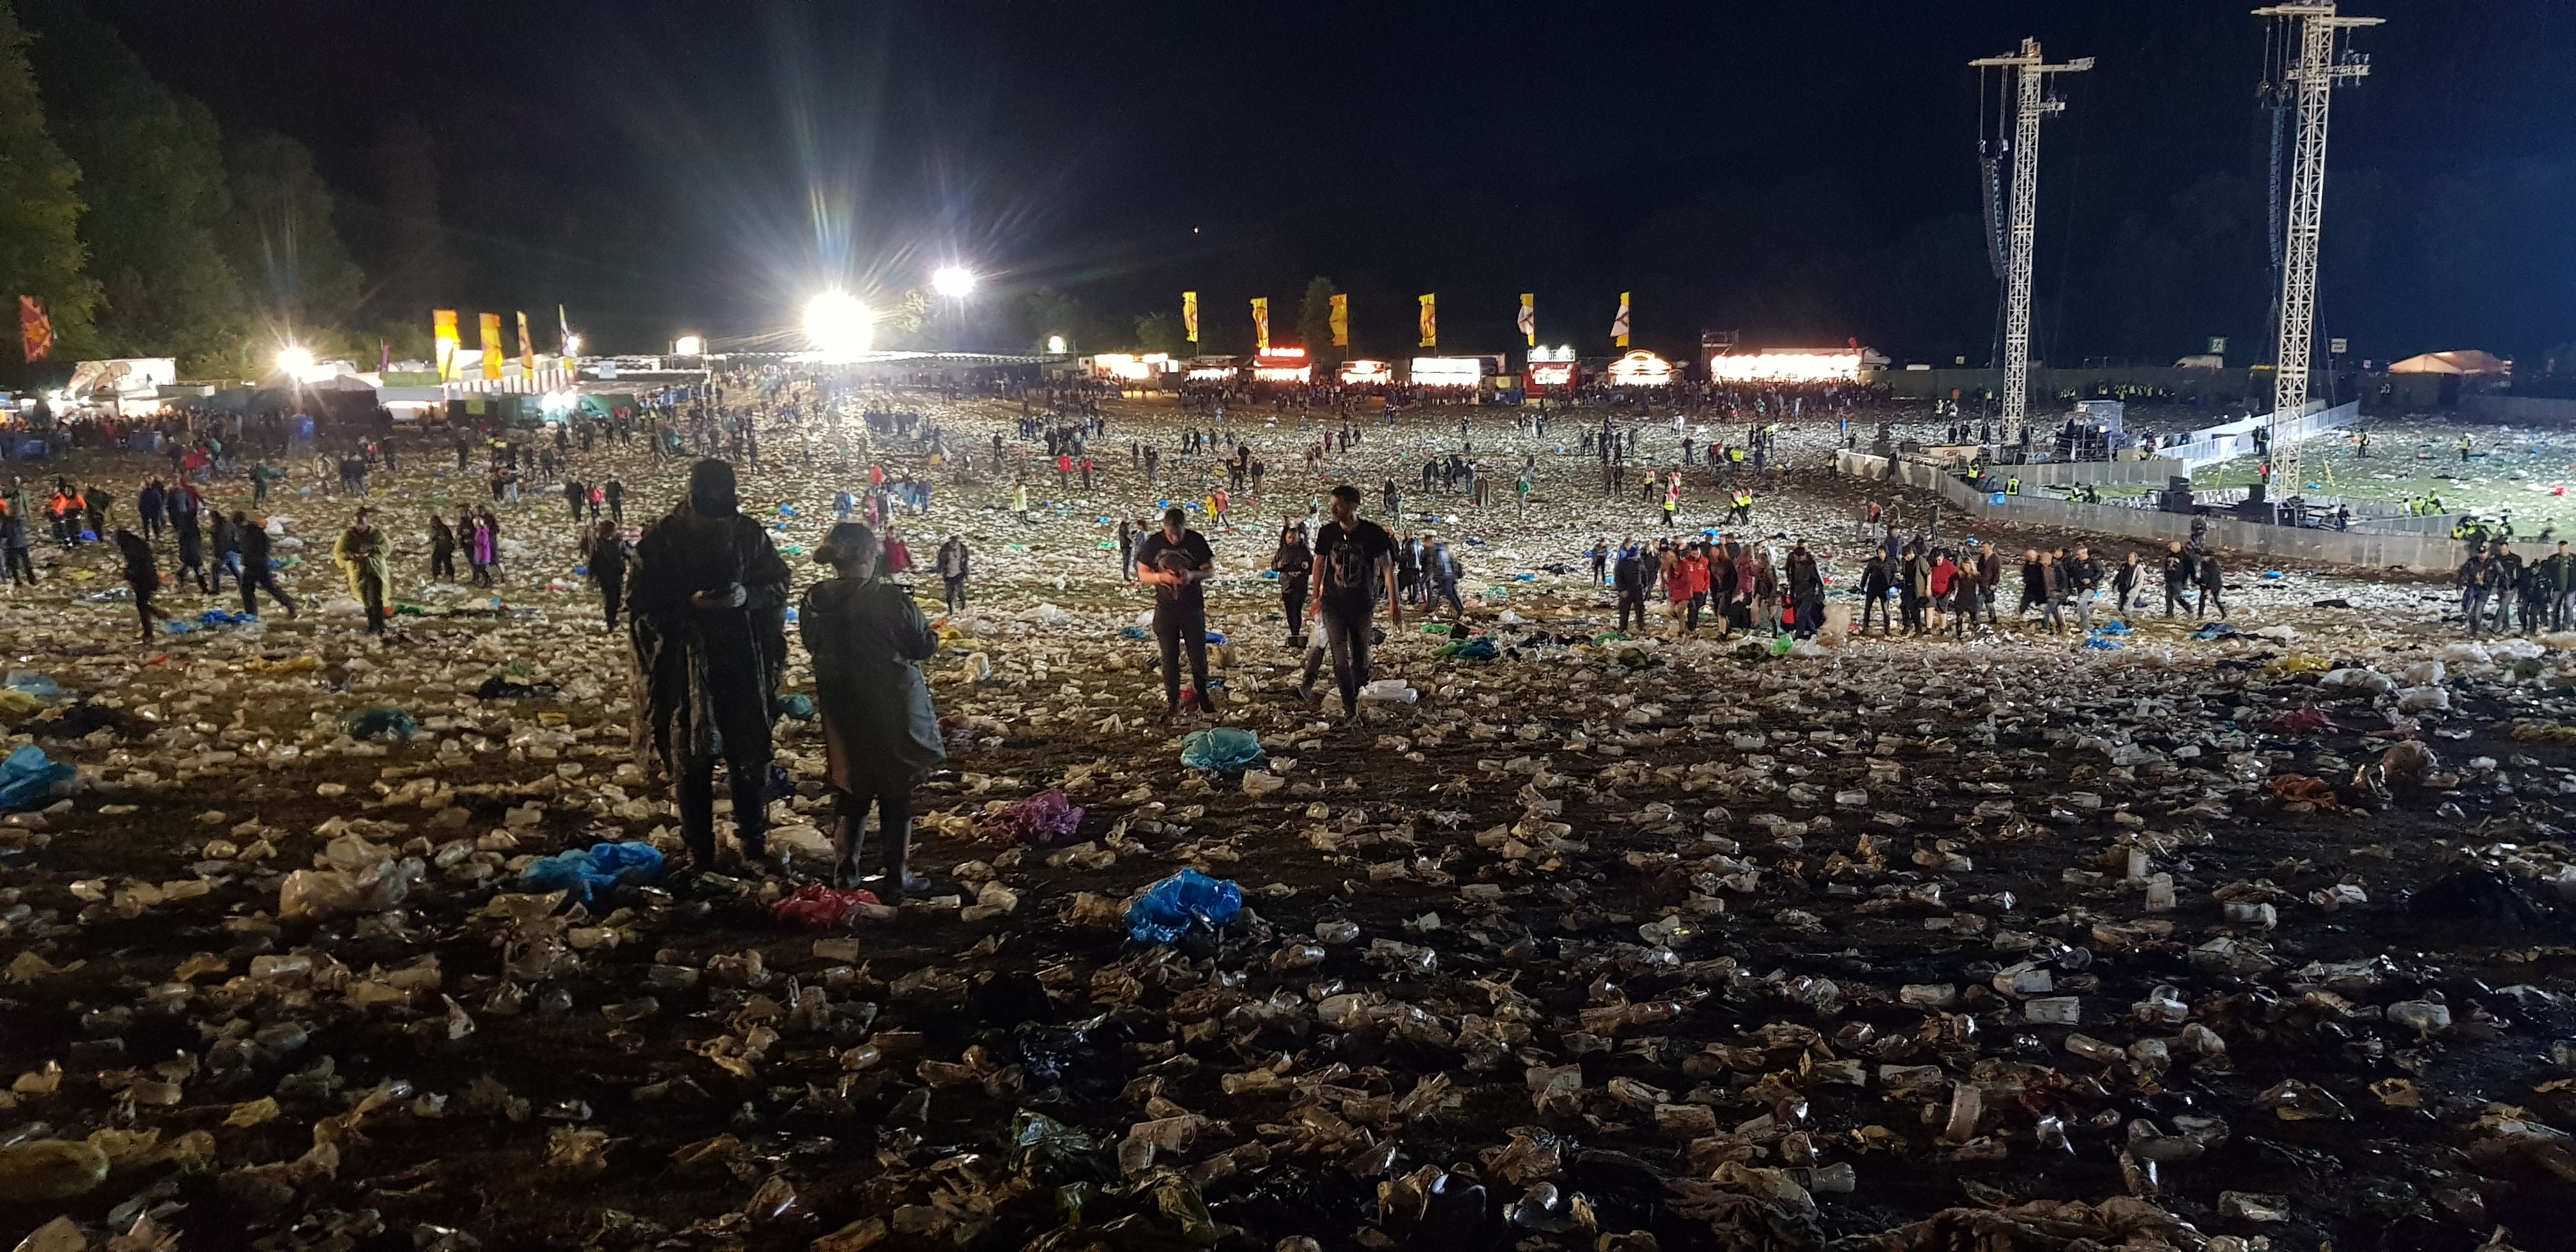 THE UNFORGIVEN Fury over sea of plastic left behind by 75,000 Metallica fans in Slane Castle on World Oceans Day